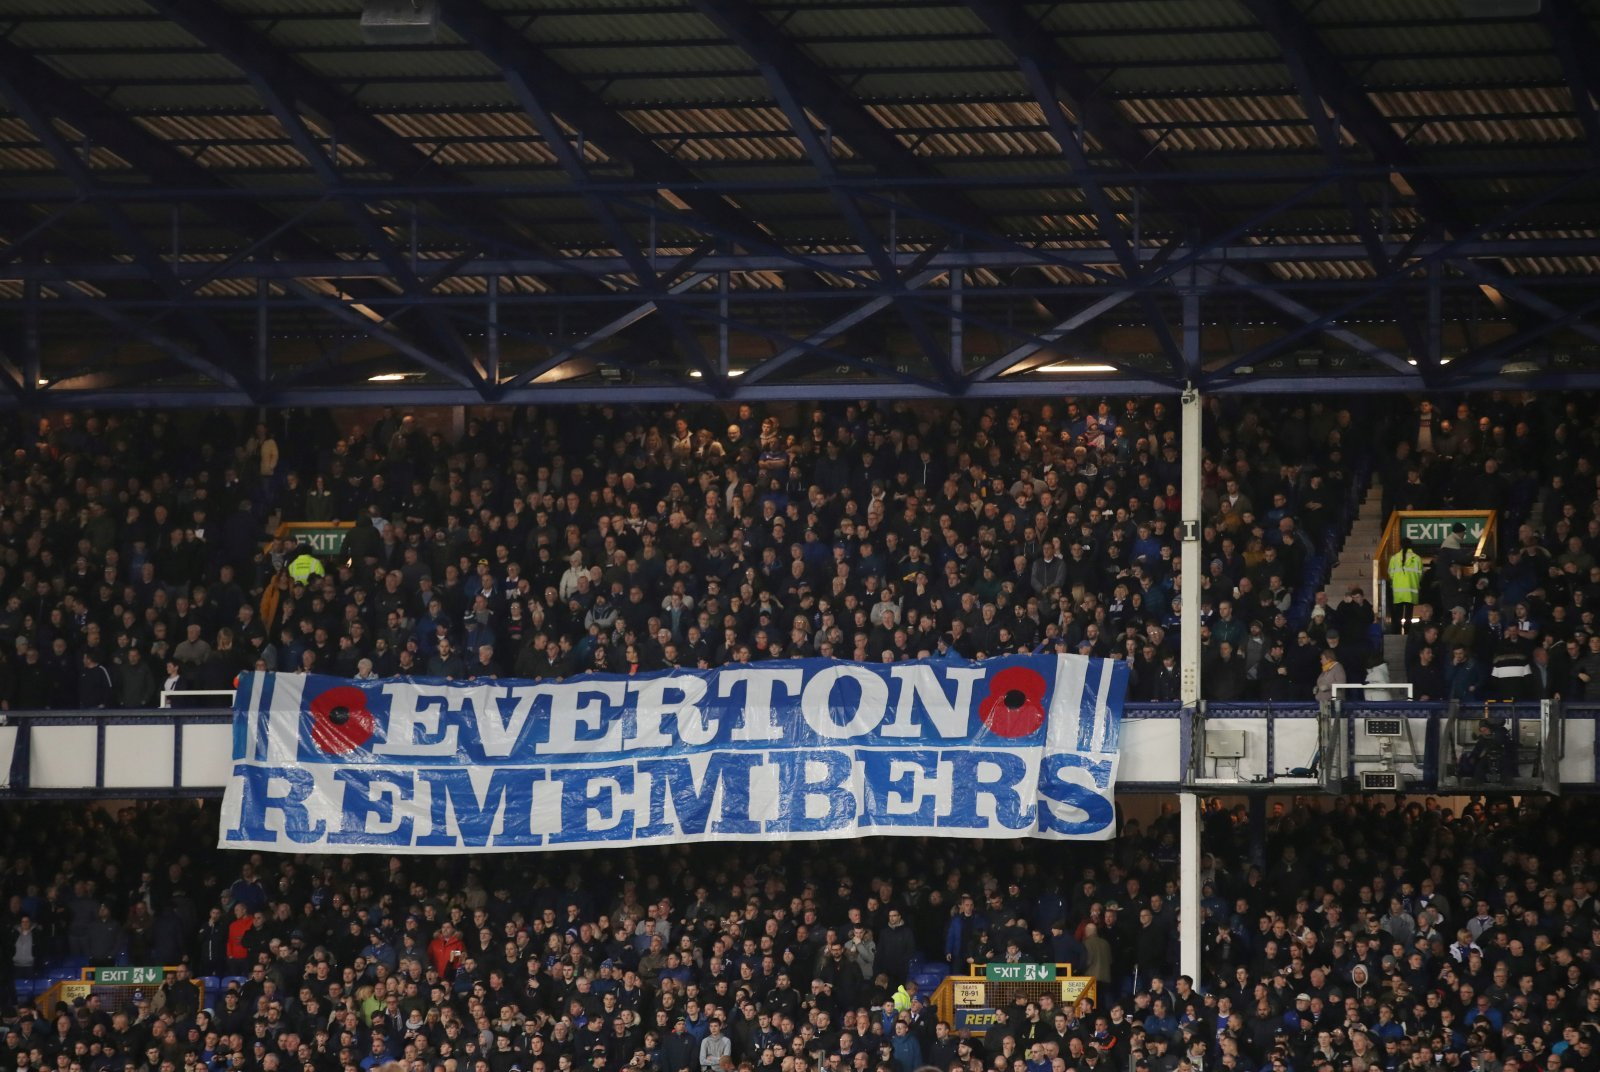 Everton: Fans agree with influencer that the club 'has gone soft'